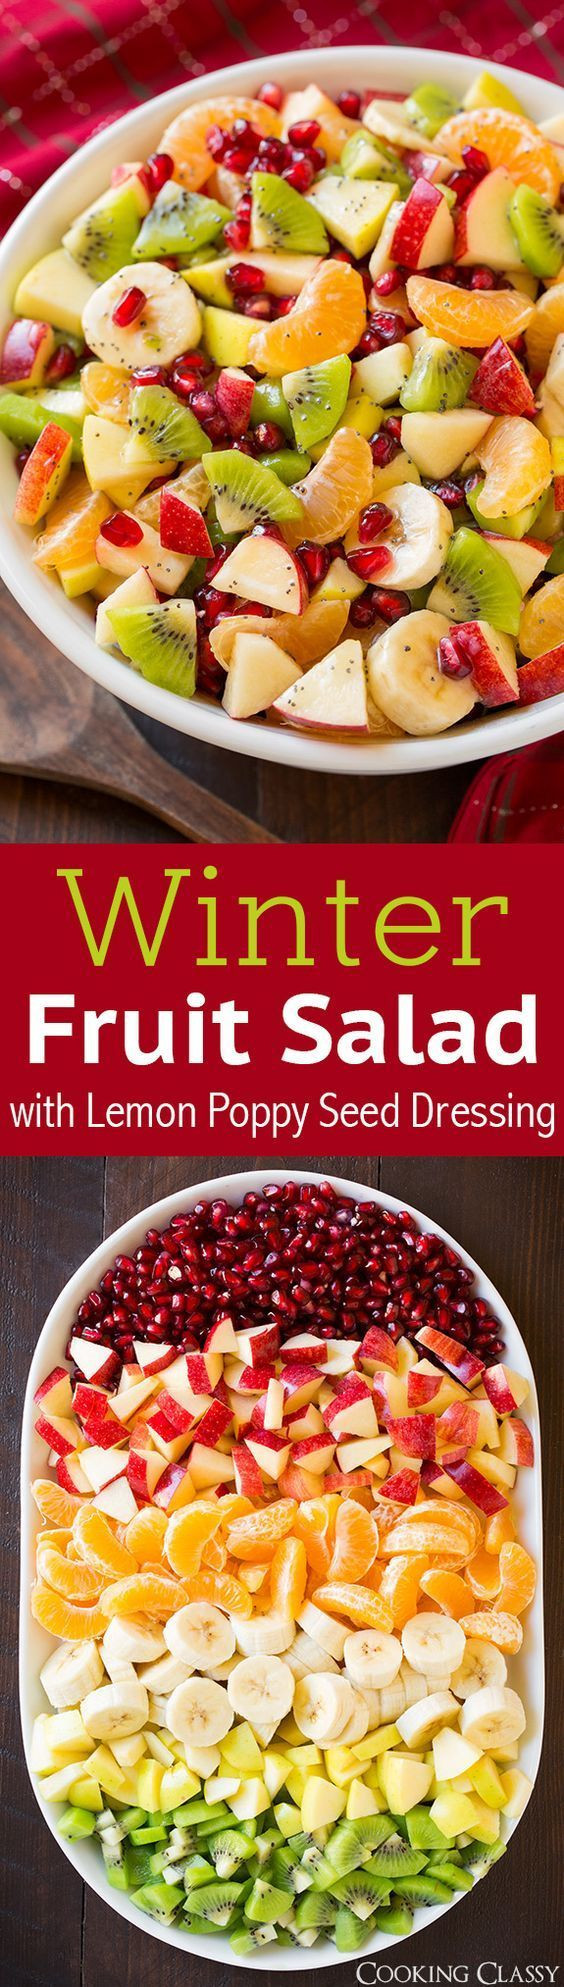 Fruit Salads For Thanksgiving Dinner  Best 25 Fruit salad ideas on Pinterest